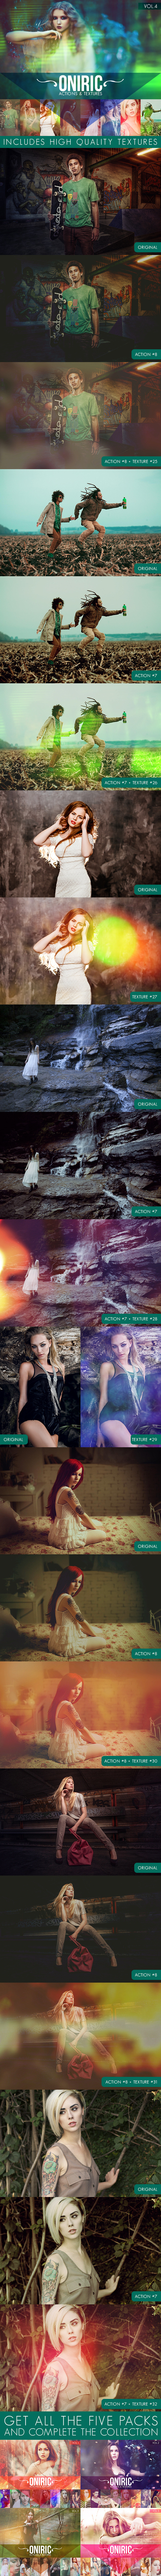 Oniric Actions and Textures Vol.4 - Photo Effects Actions